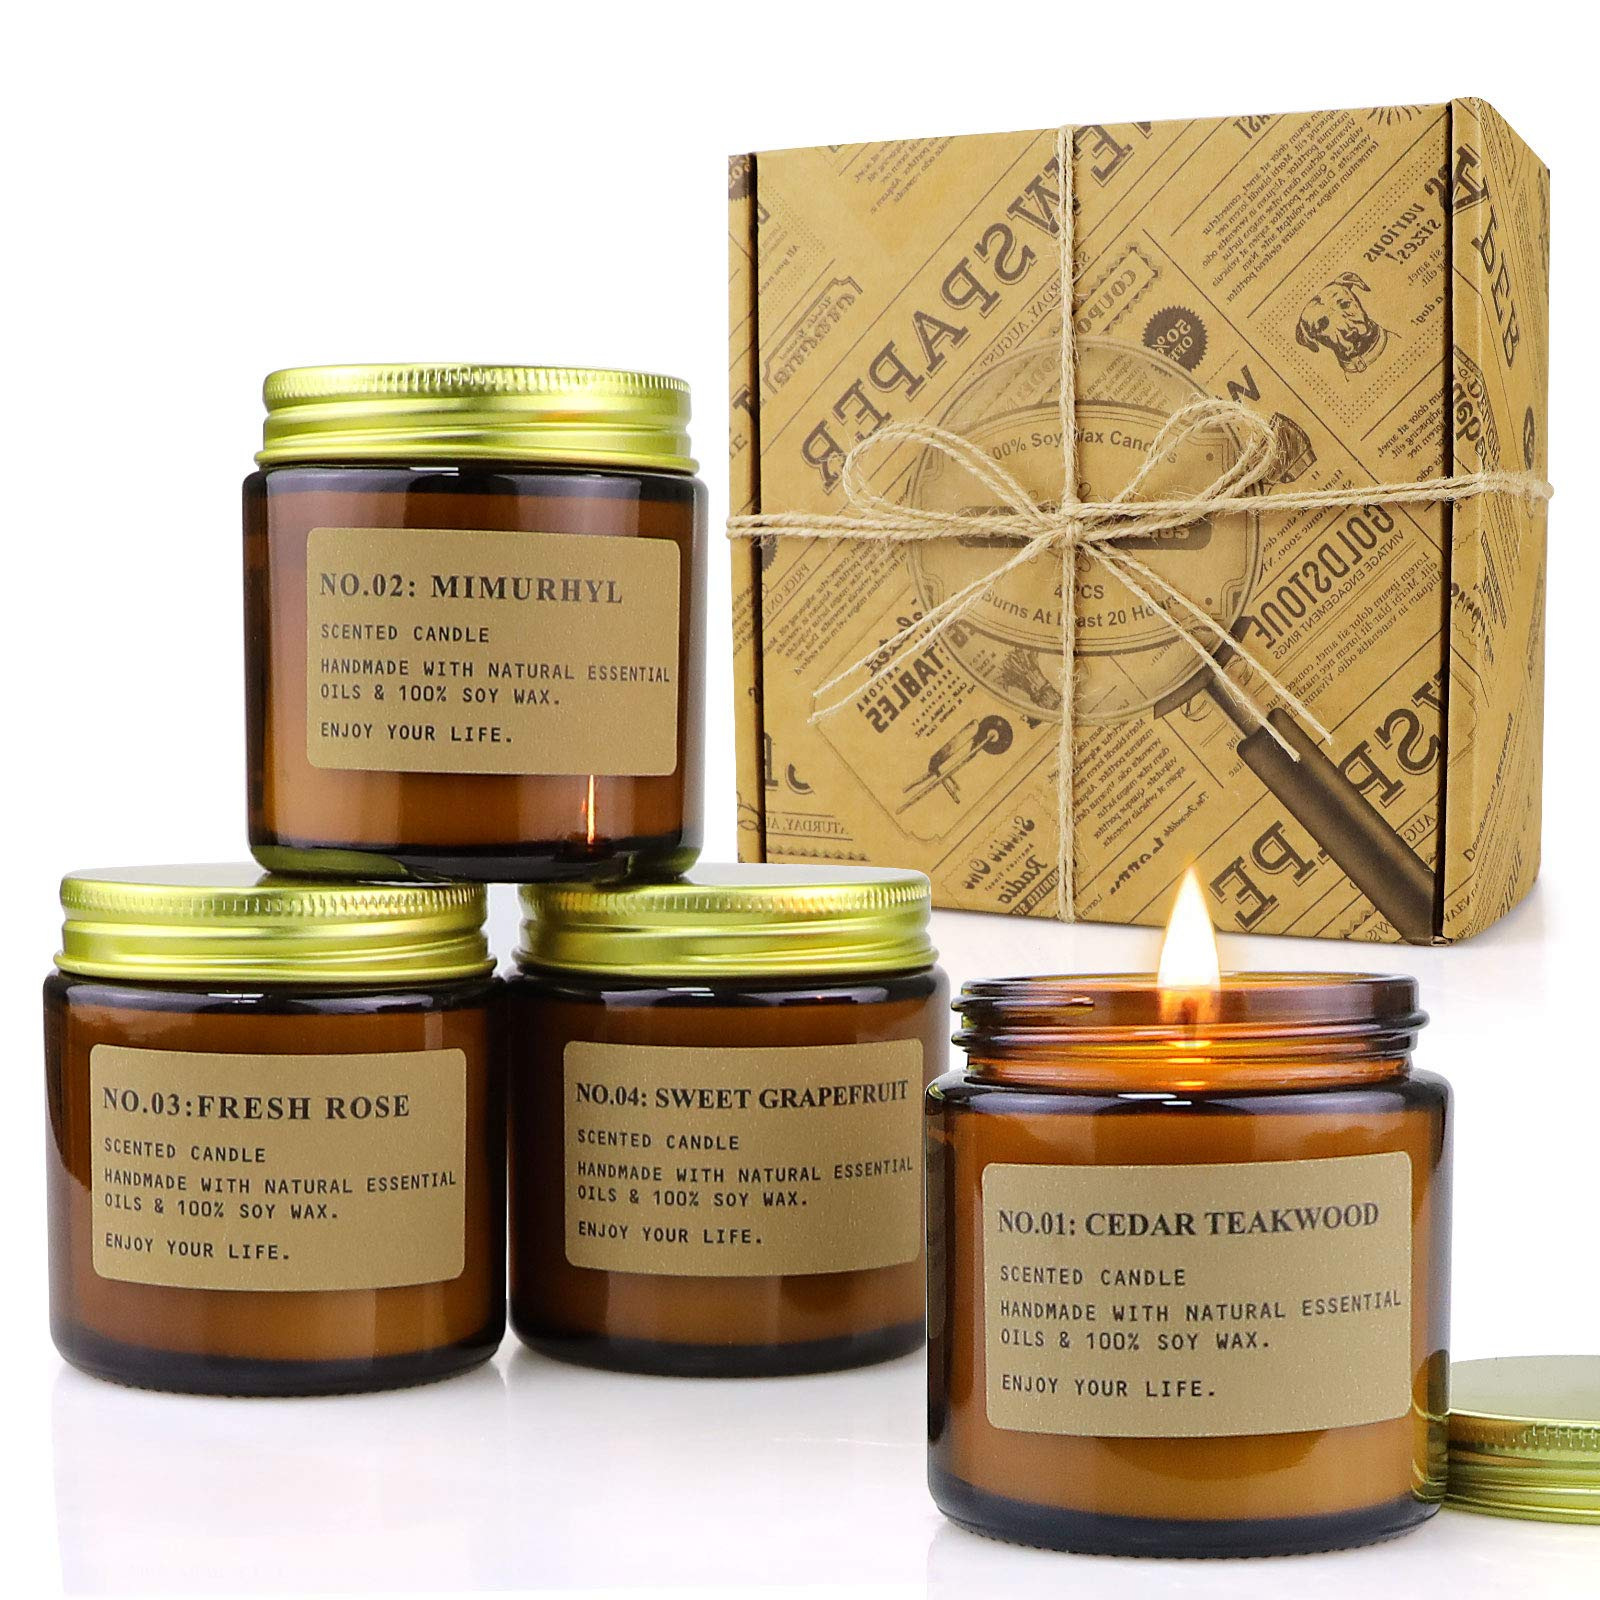 4 Pack Scented Candle Set Soy Wax Candles, Aromatherapy Candles for Home Decoration, Gift for Women with Amber Glass Jars and Kraft Wrapping